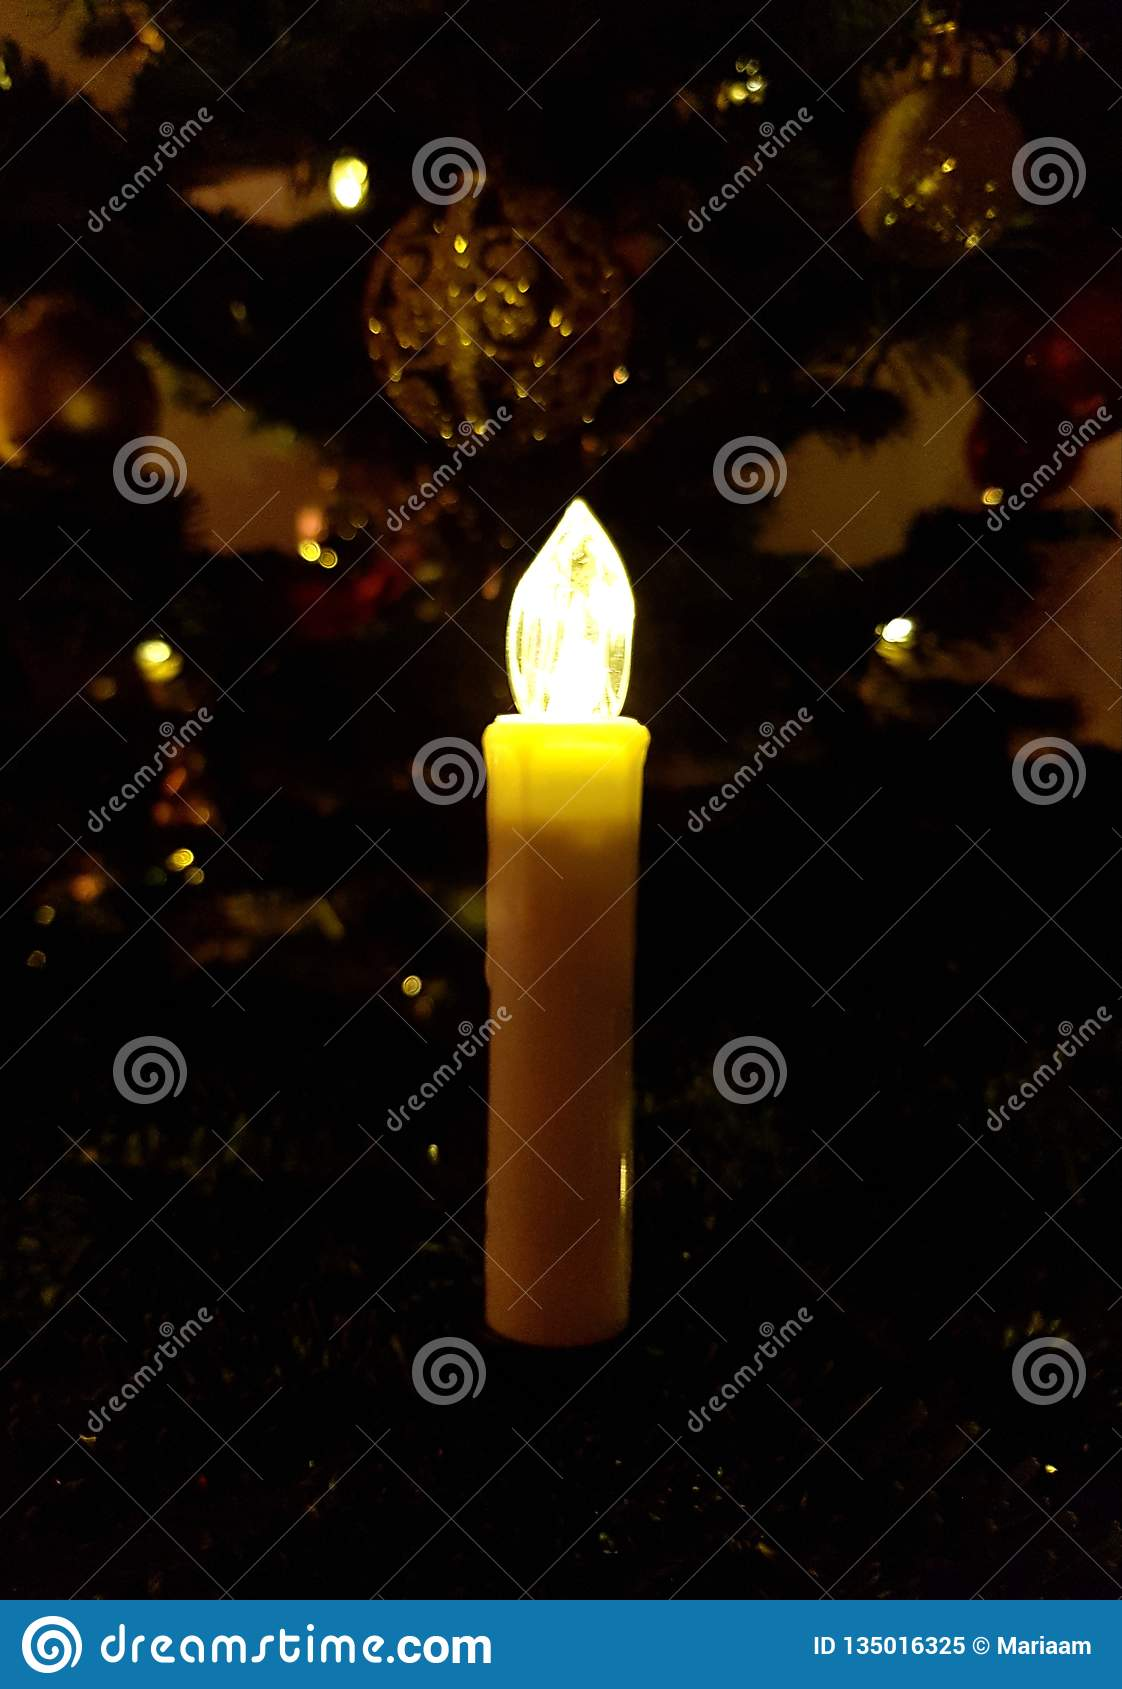 Candle Light Dark Stock Images - Download 47,607 Royalty ...